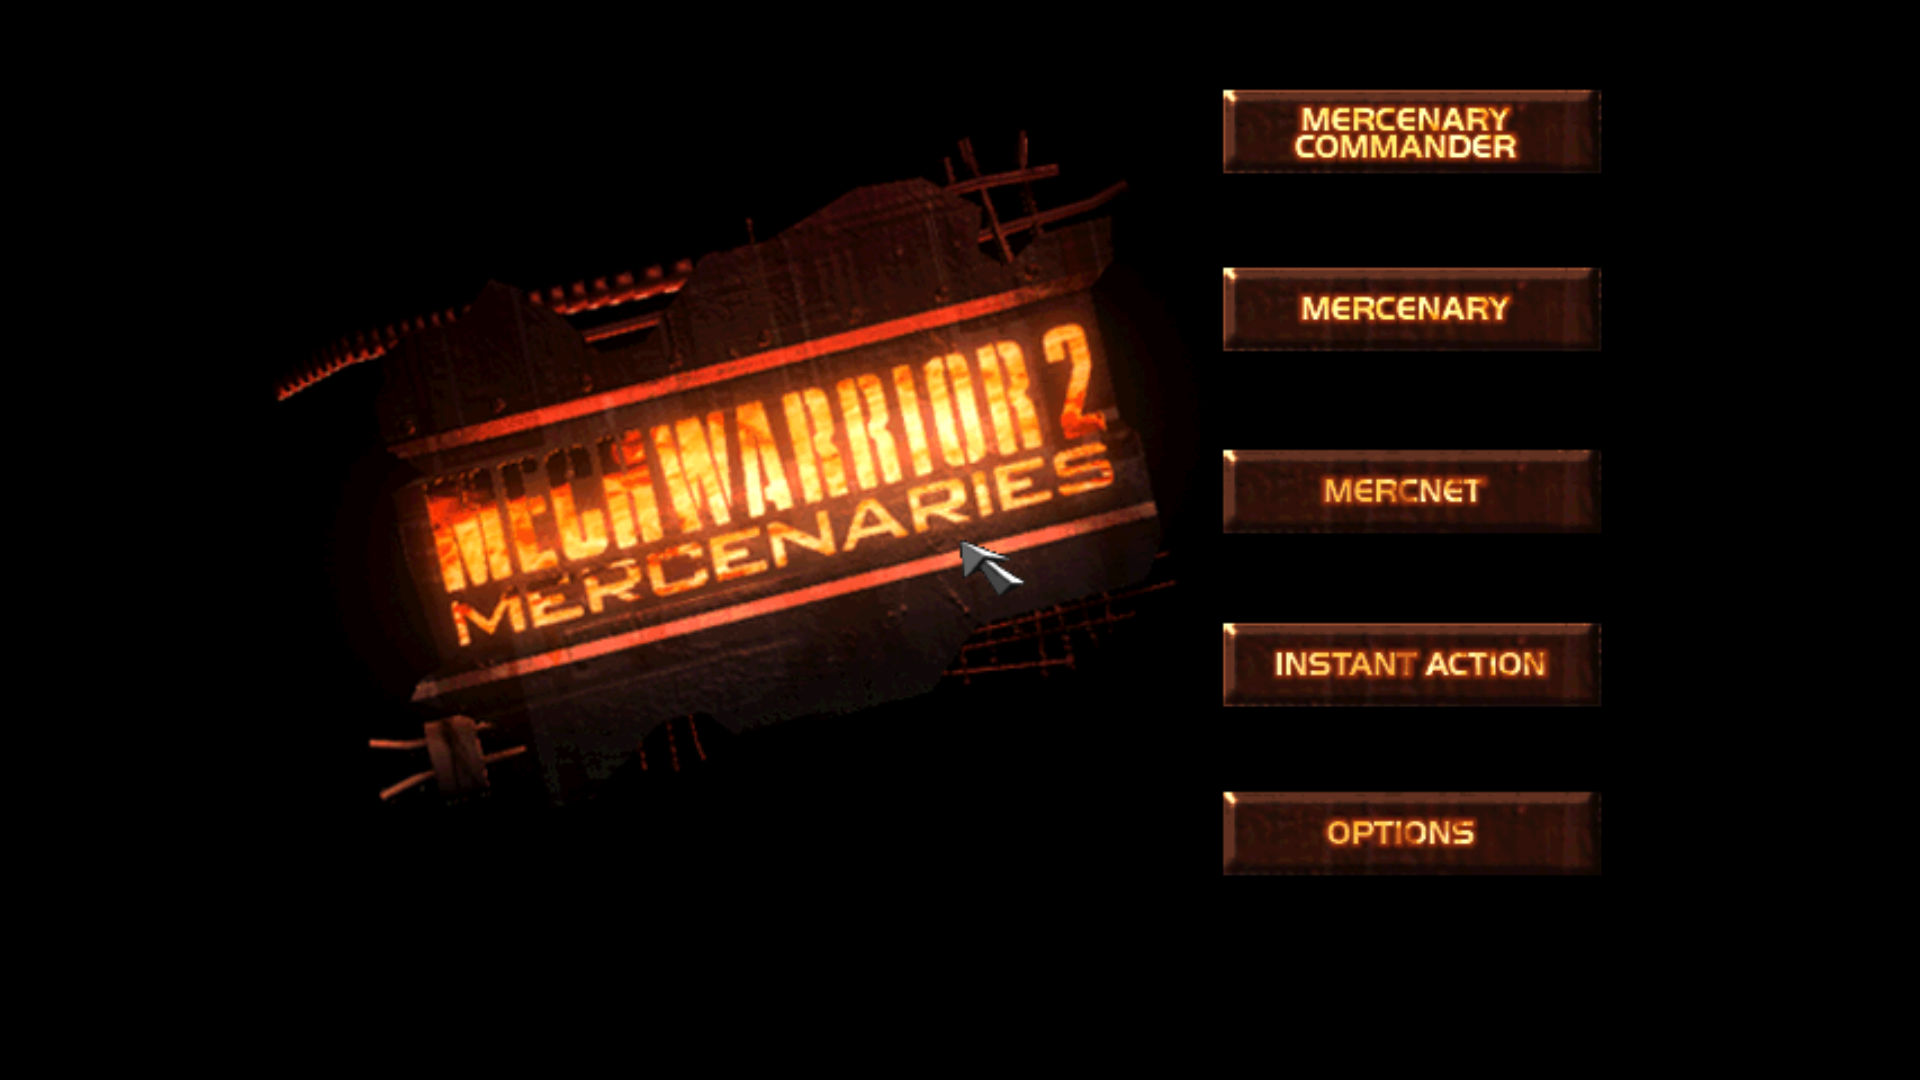 Figure 11 - Mercenaries is an official add-on for Mech Warrior 2, also available for DOS